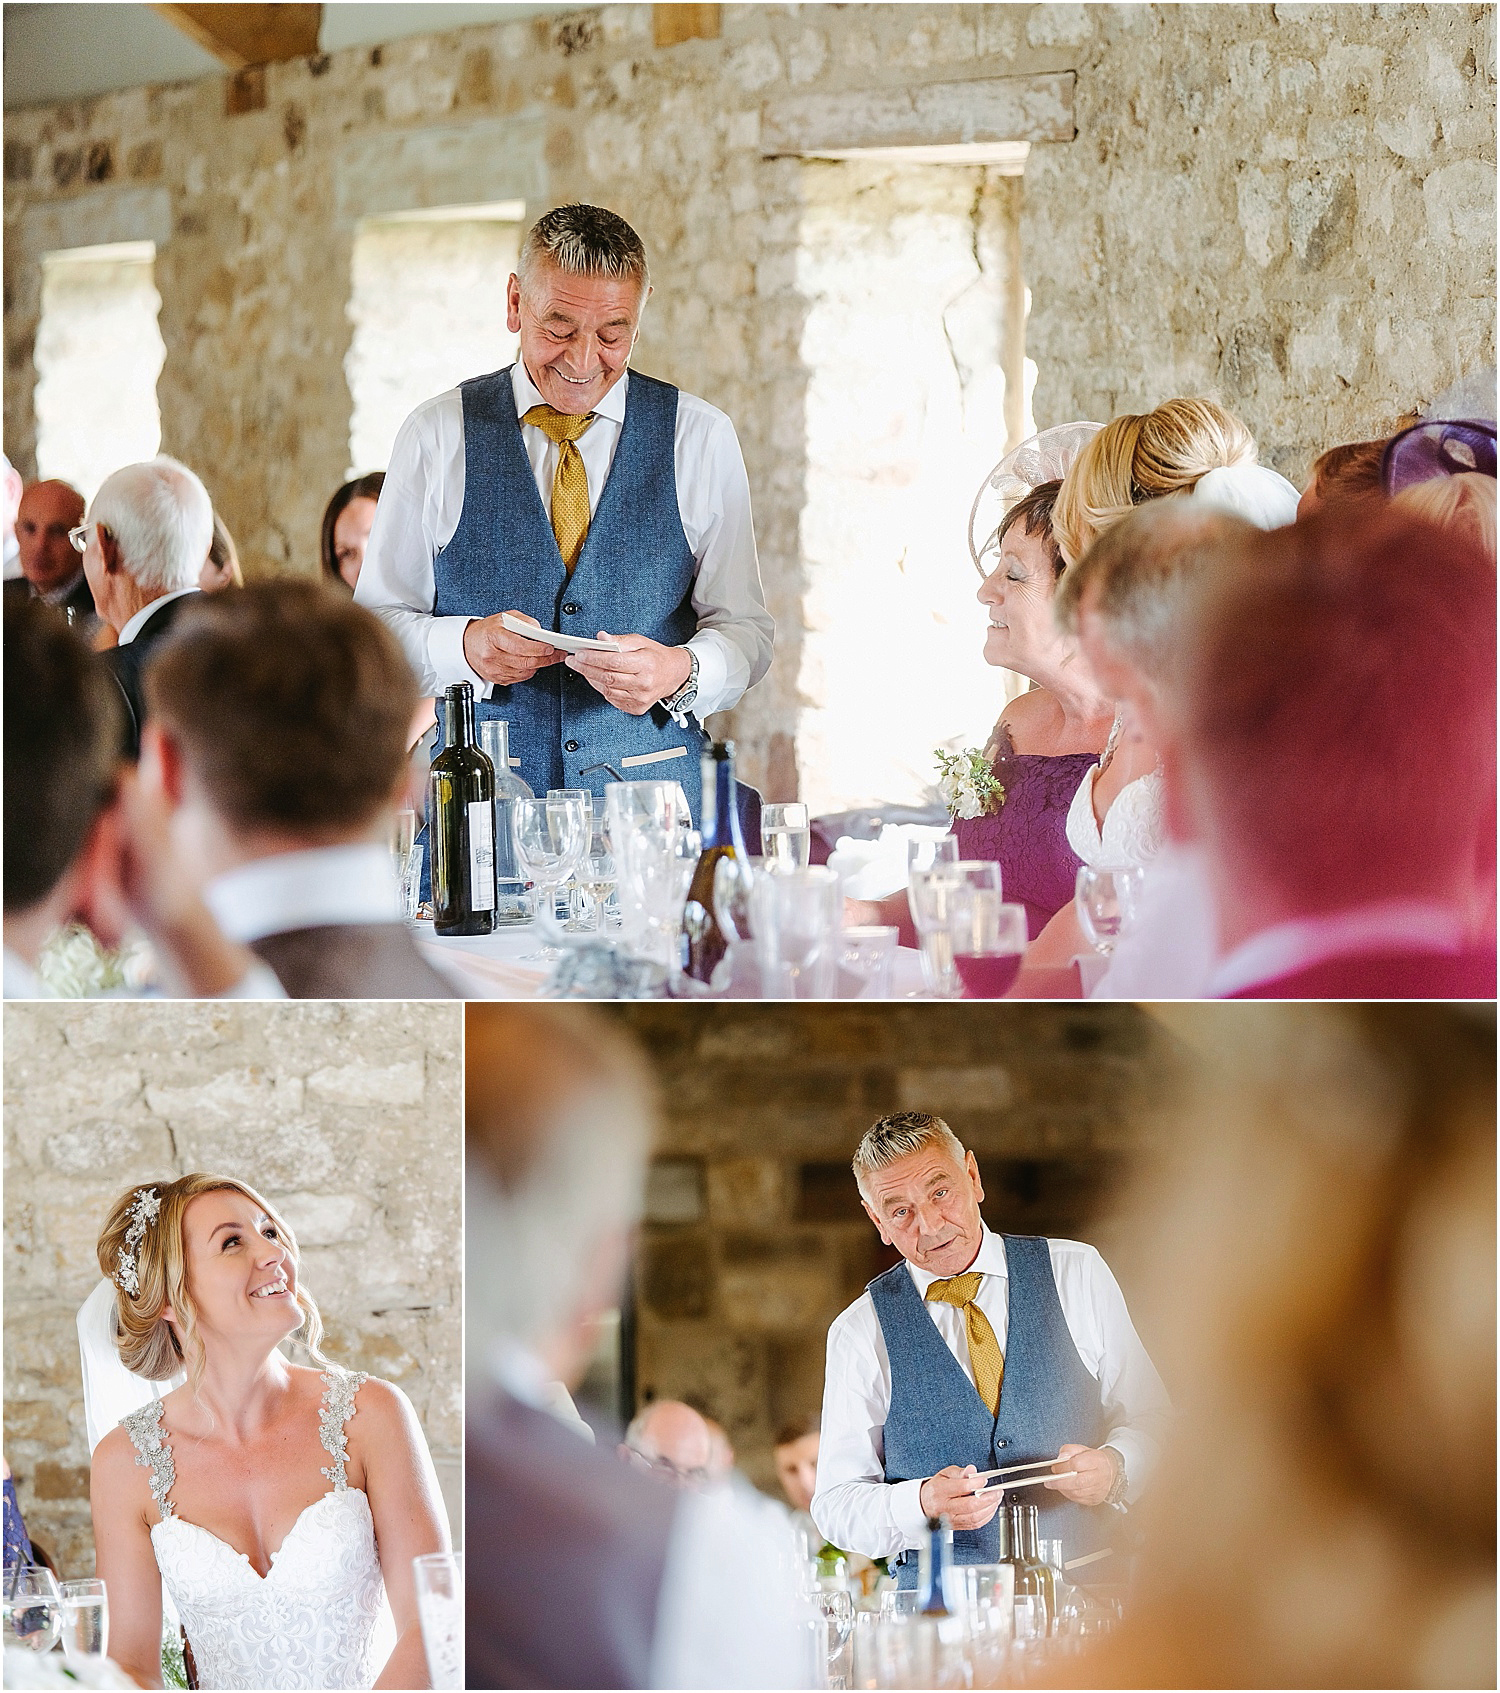 Wedding at Healey Barn - wedding photography by www.2tonephotography.co.uk 079.jpg